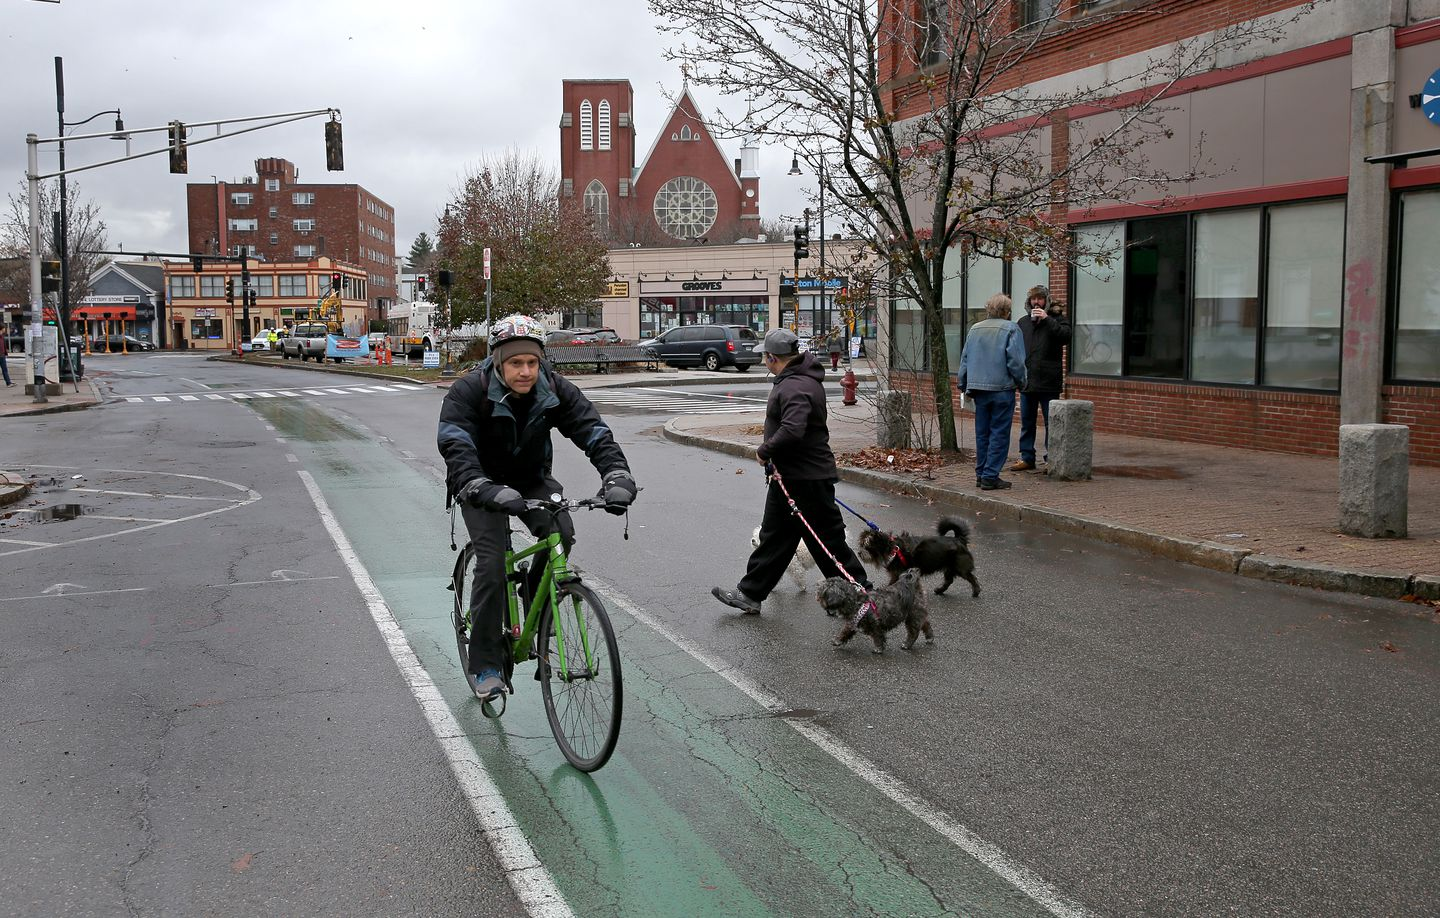 A dog walker crossed the street as a cyclists rode through Union Square.